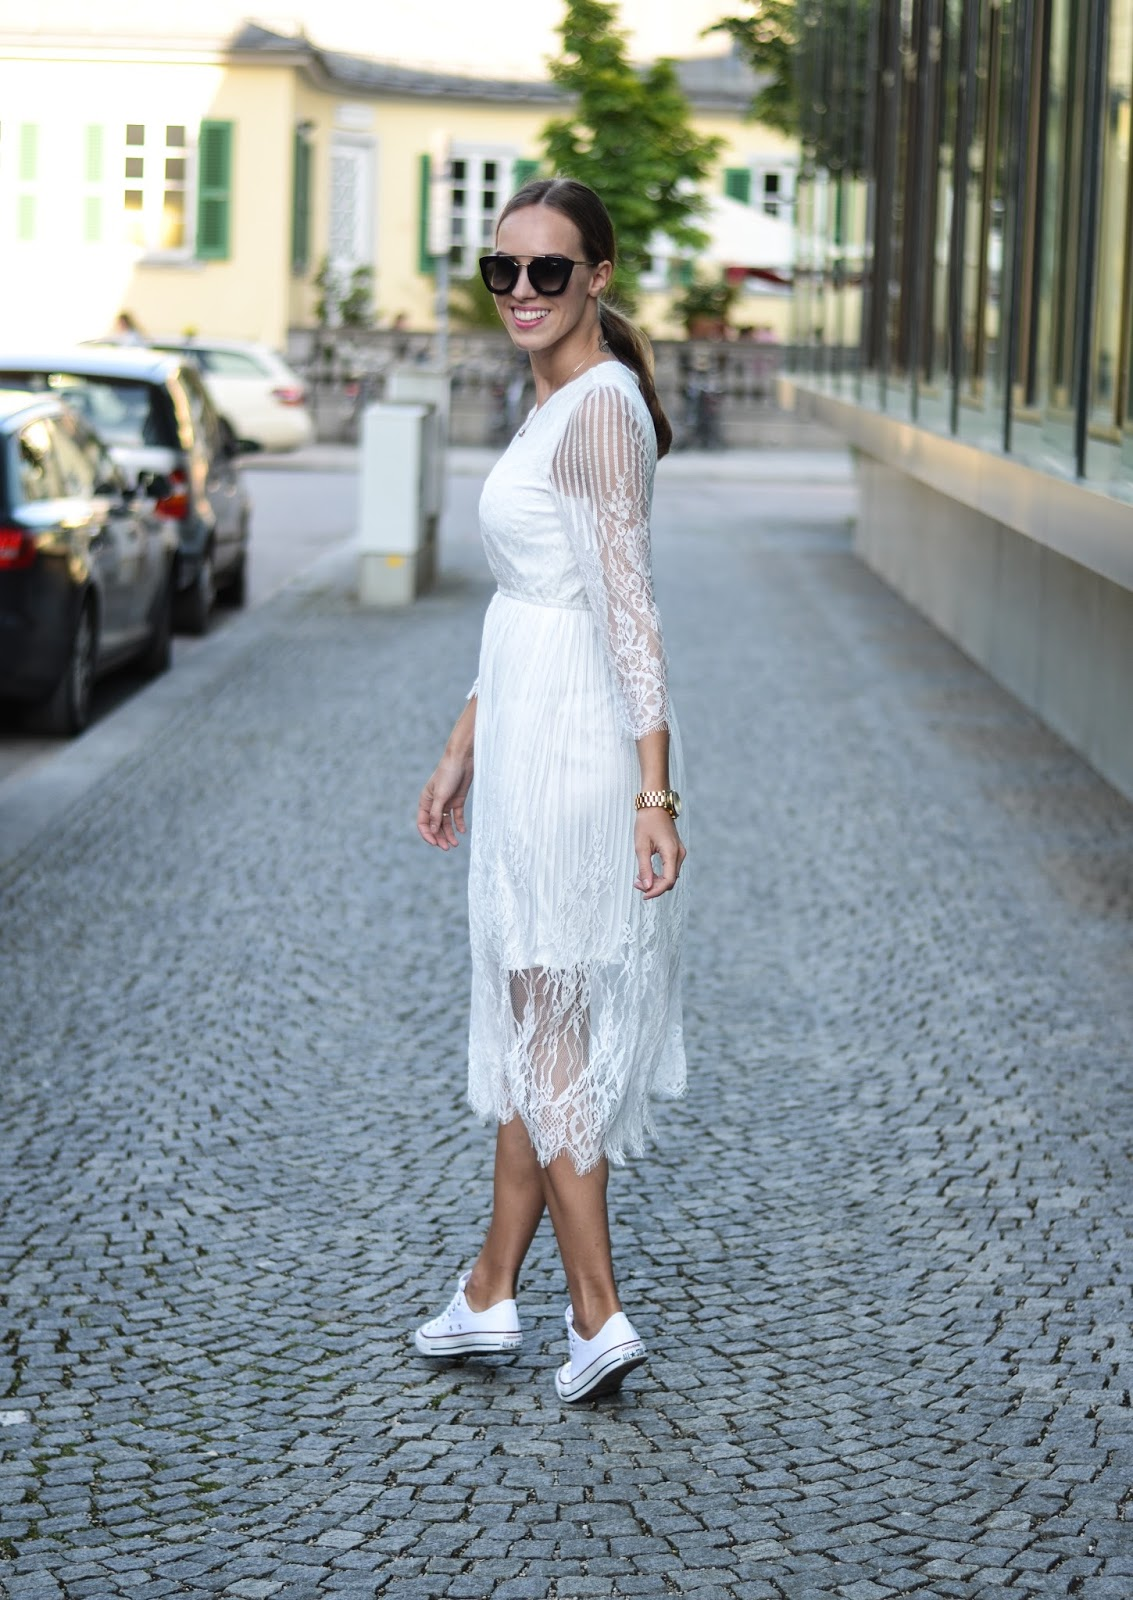 kristjaana mere white lace dress outfit summer street style munich